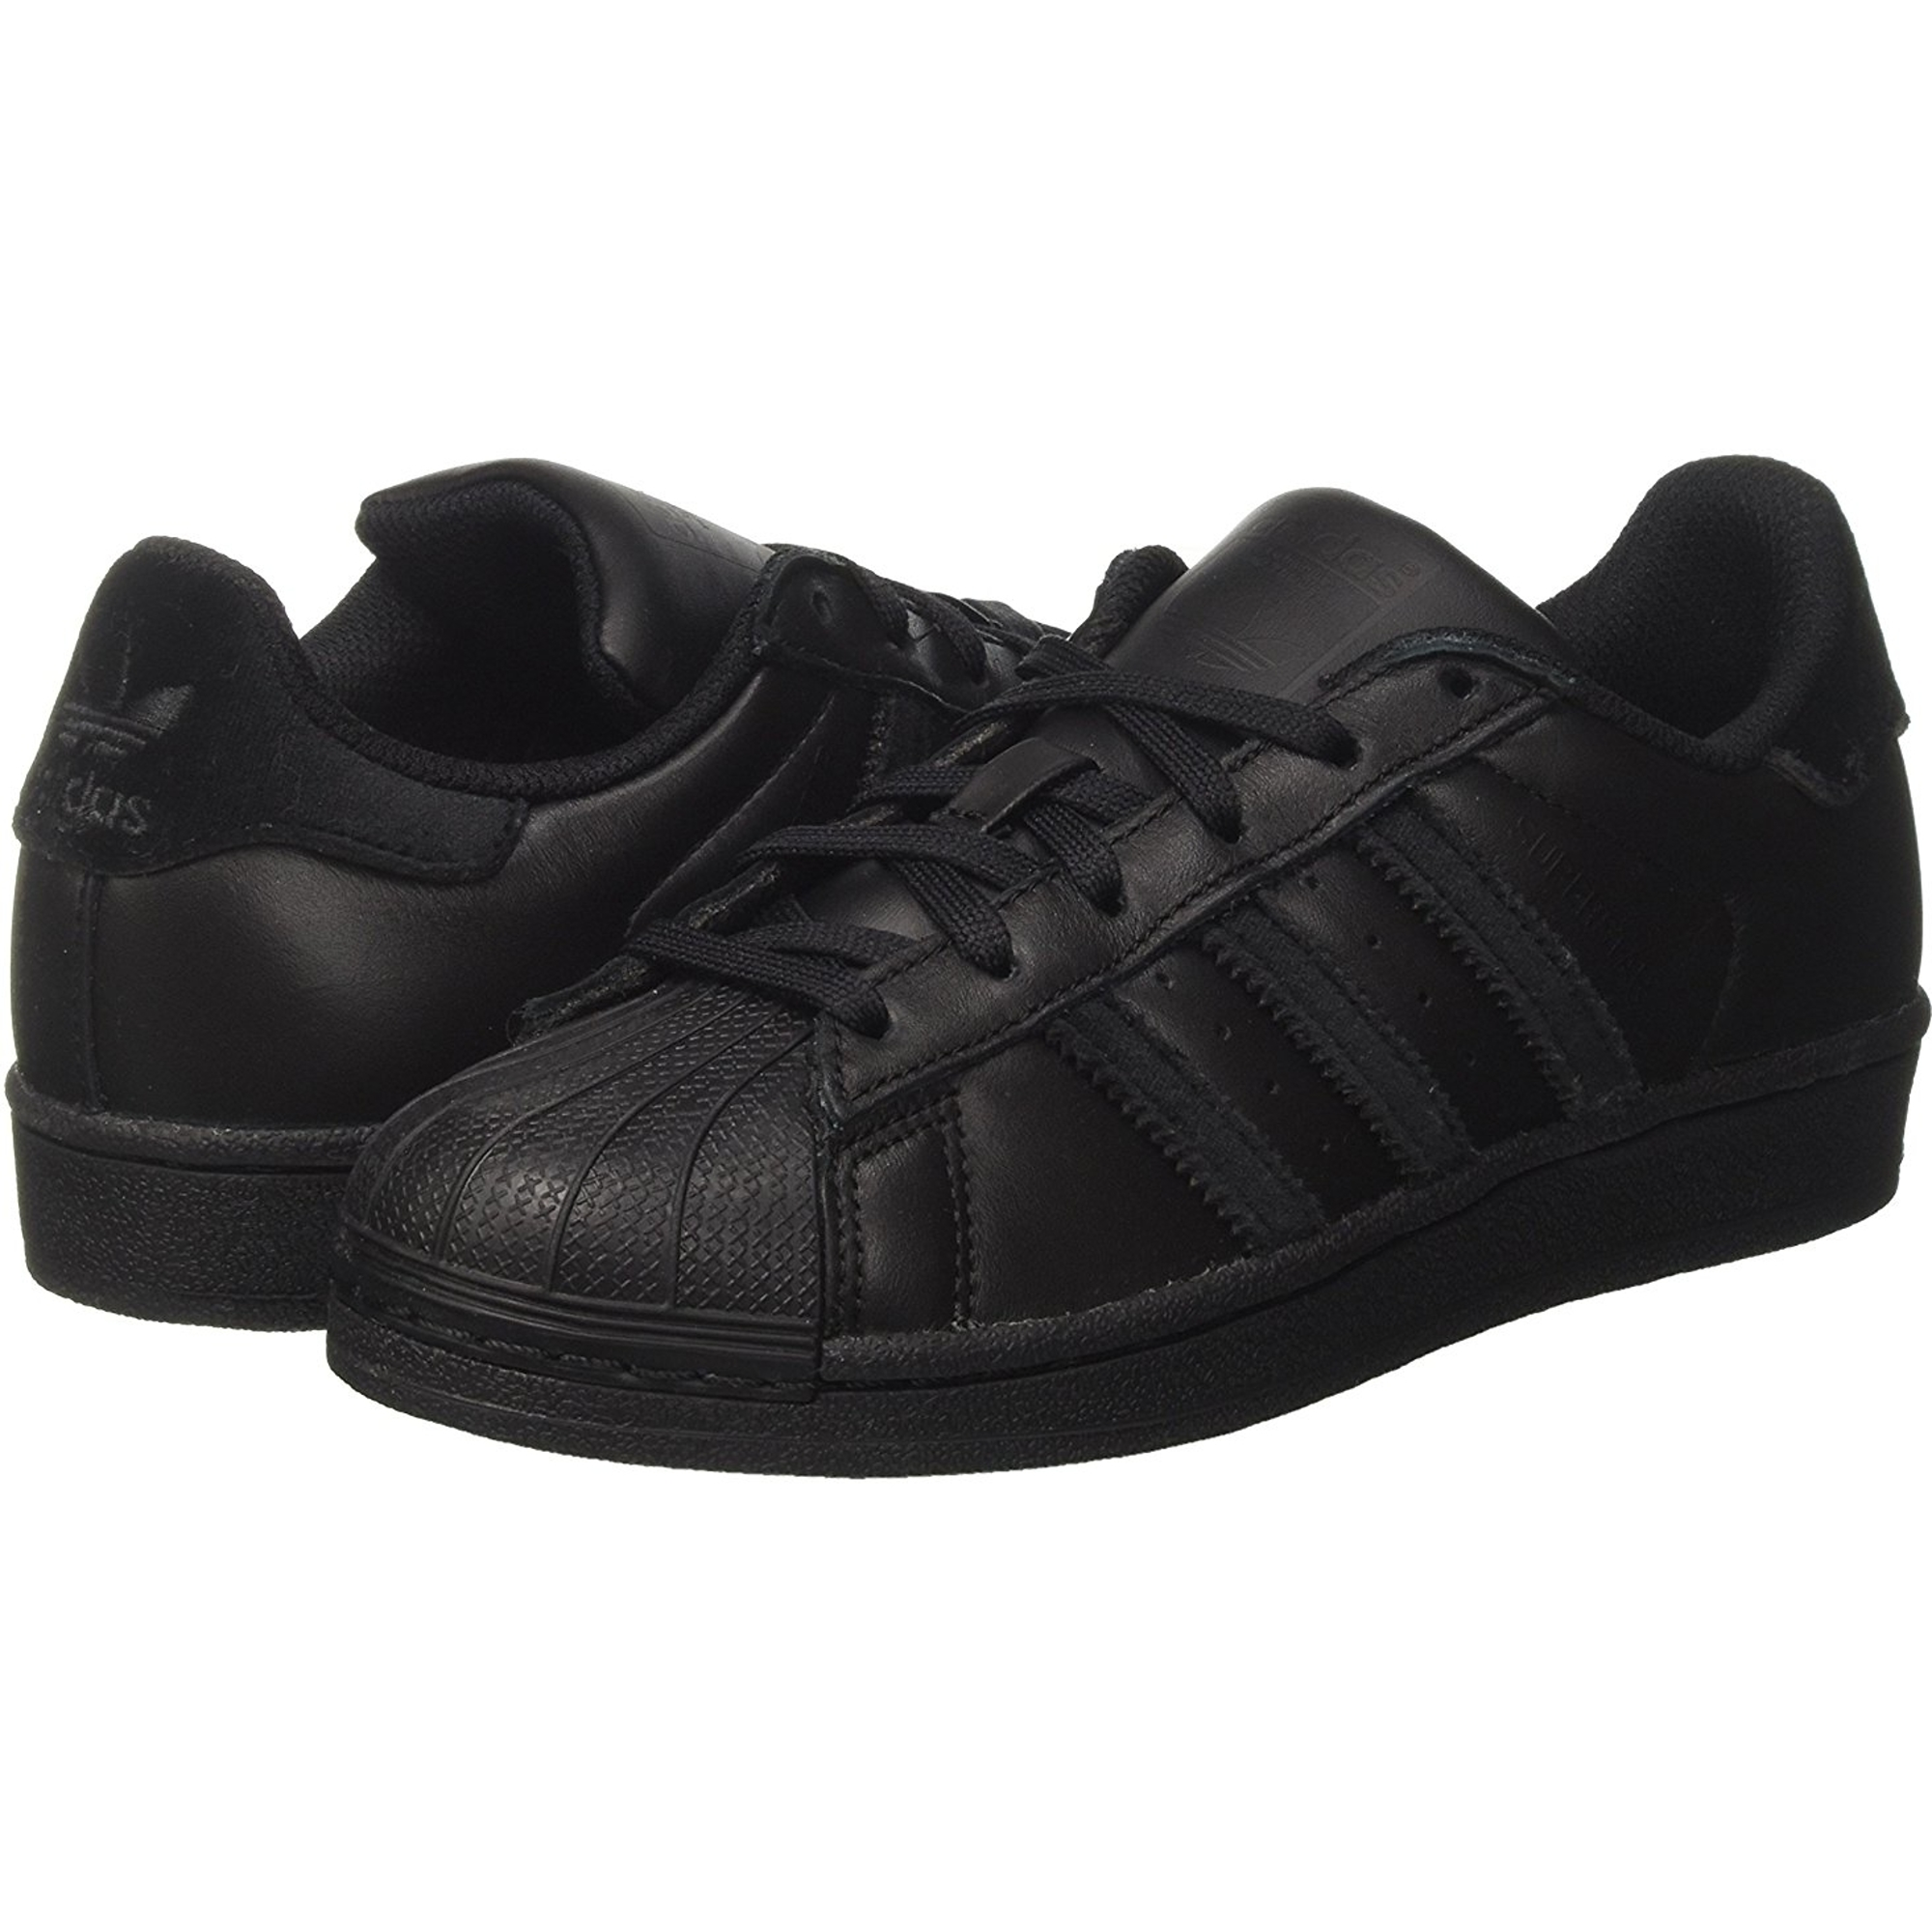 Nuovo Donna Scarpe Trainers Sneakers ADIDAS SUPERSTAR BZ0358